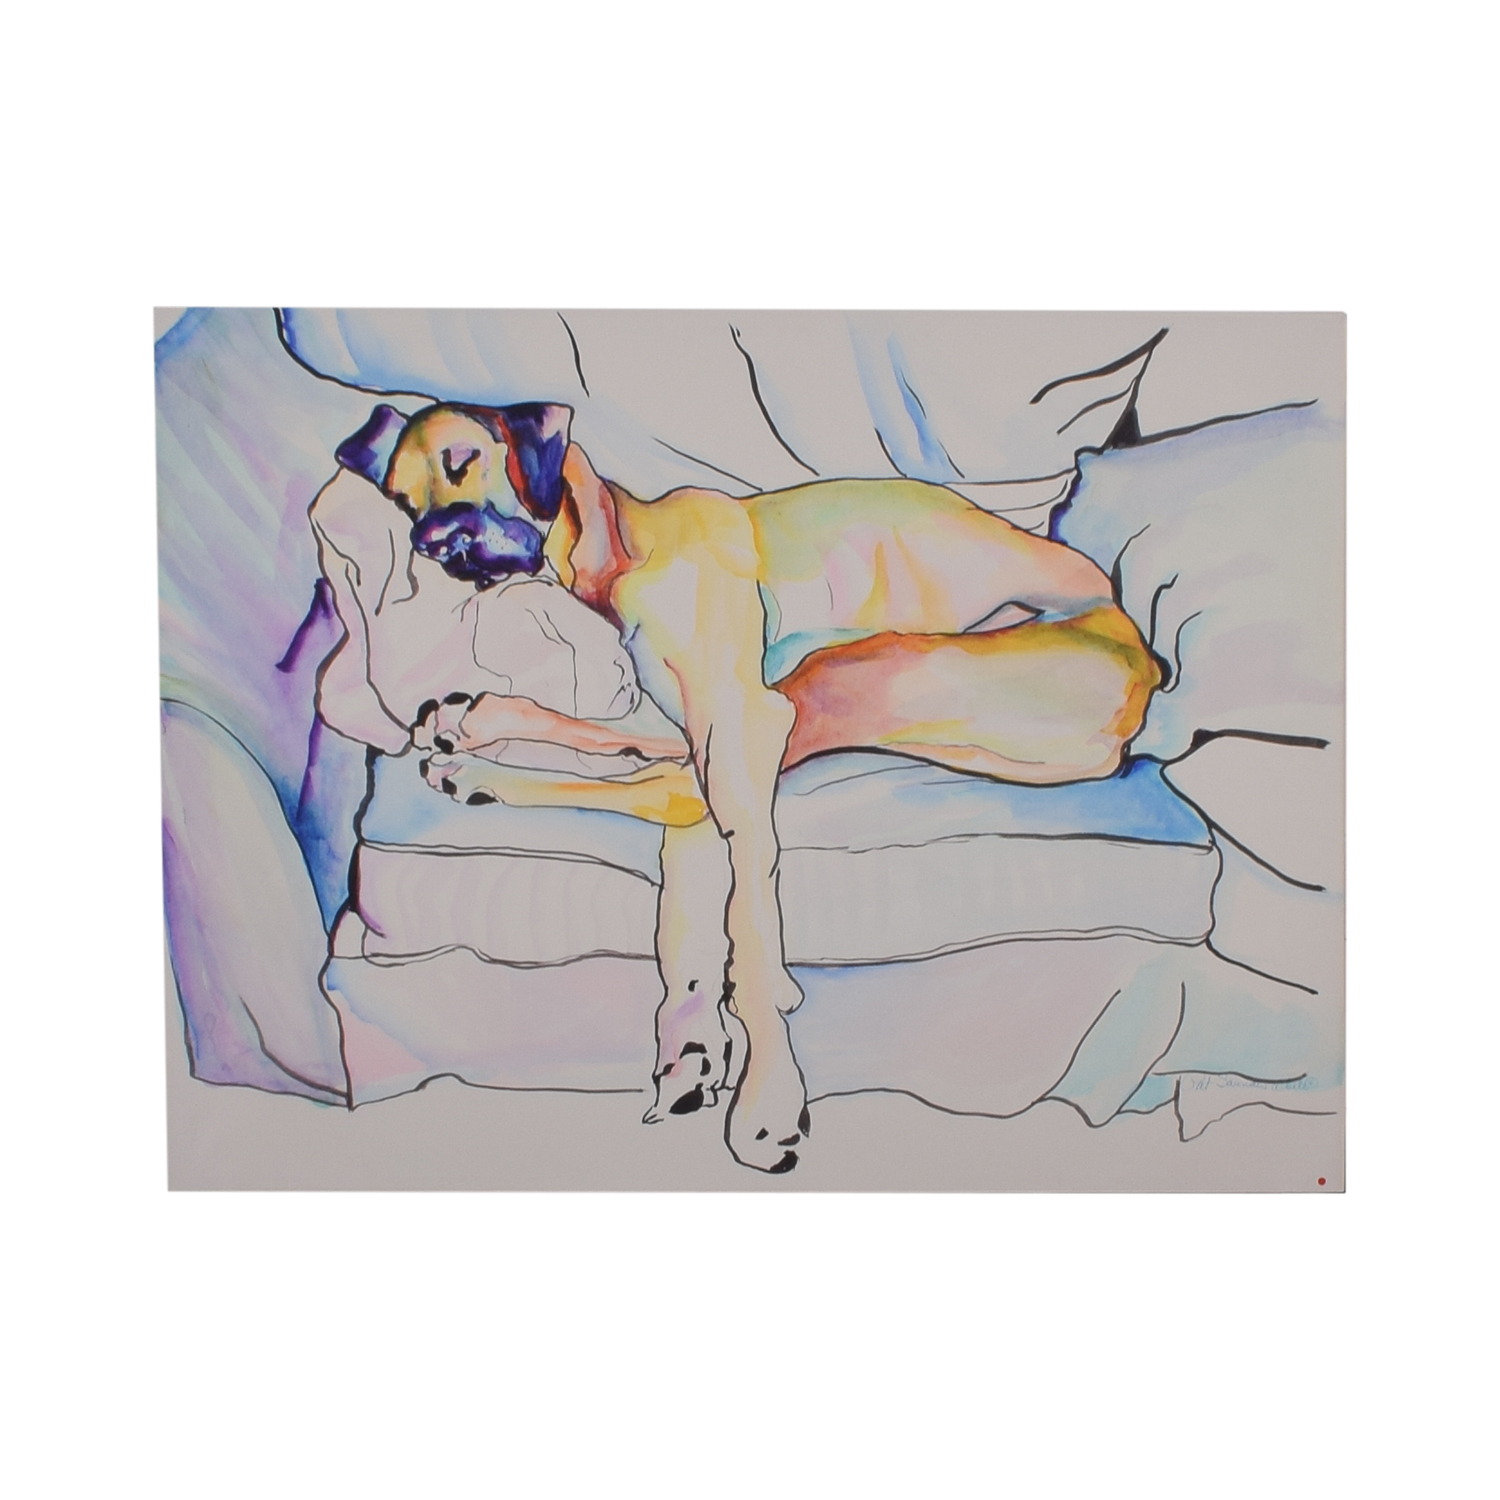 Pat Saunders-White Sleeping Beauty Wall Art